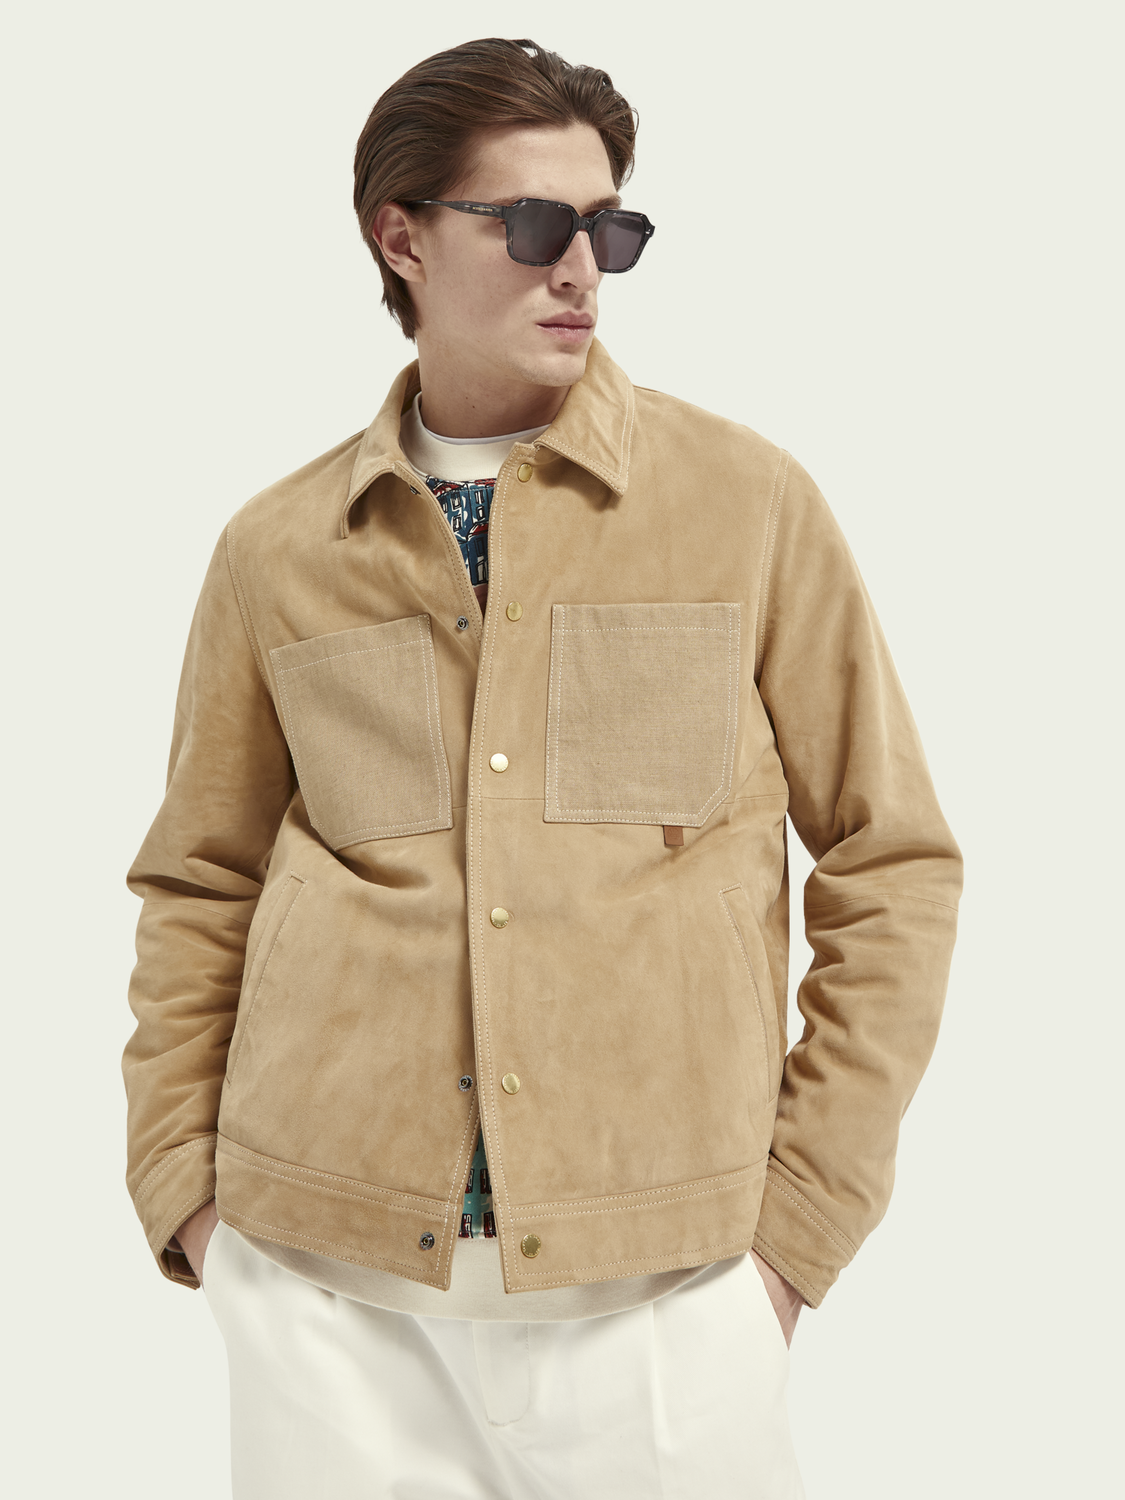 What's new Suede shirt jacket